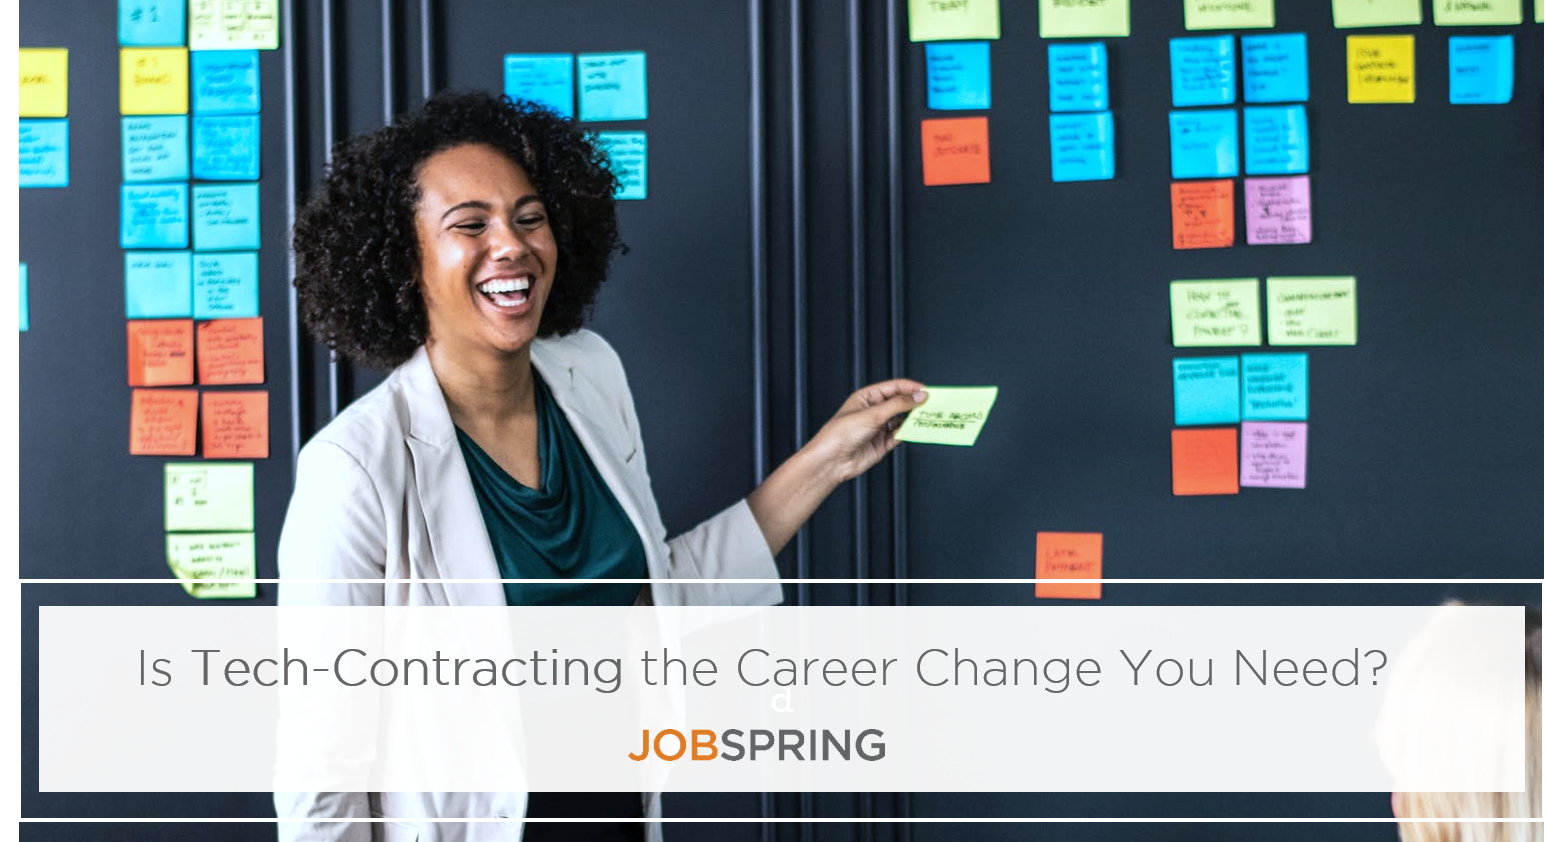 Jobspring, contracting, gig-economy, tech-career